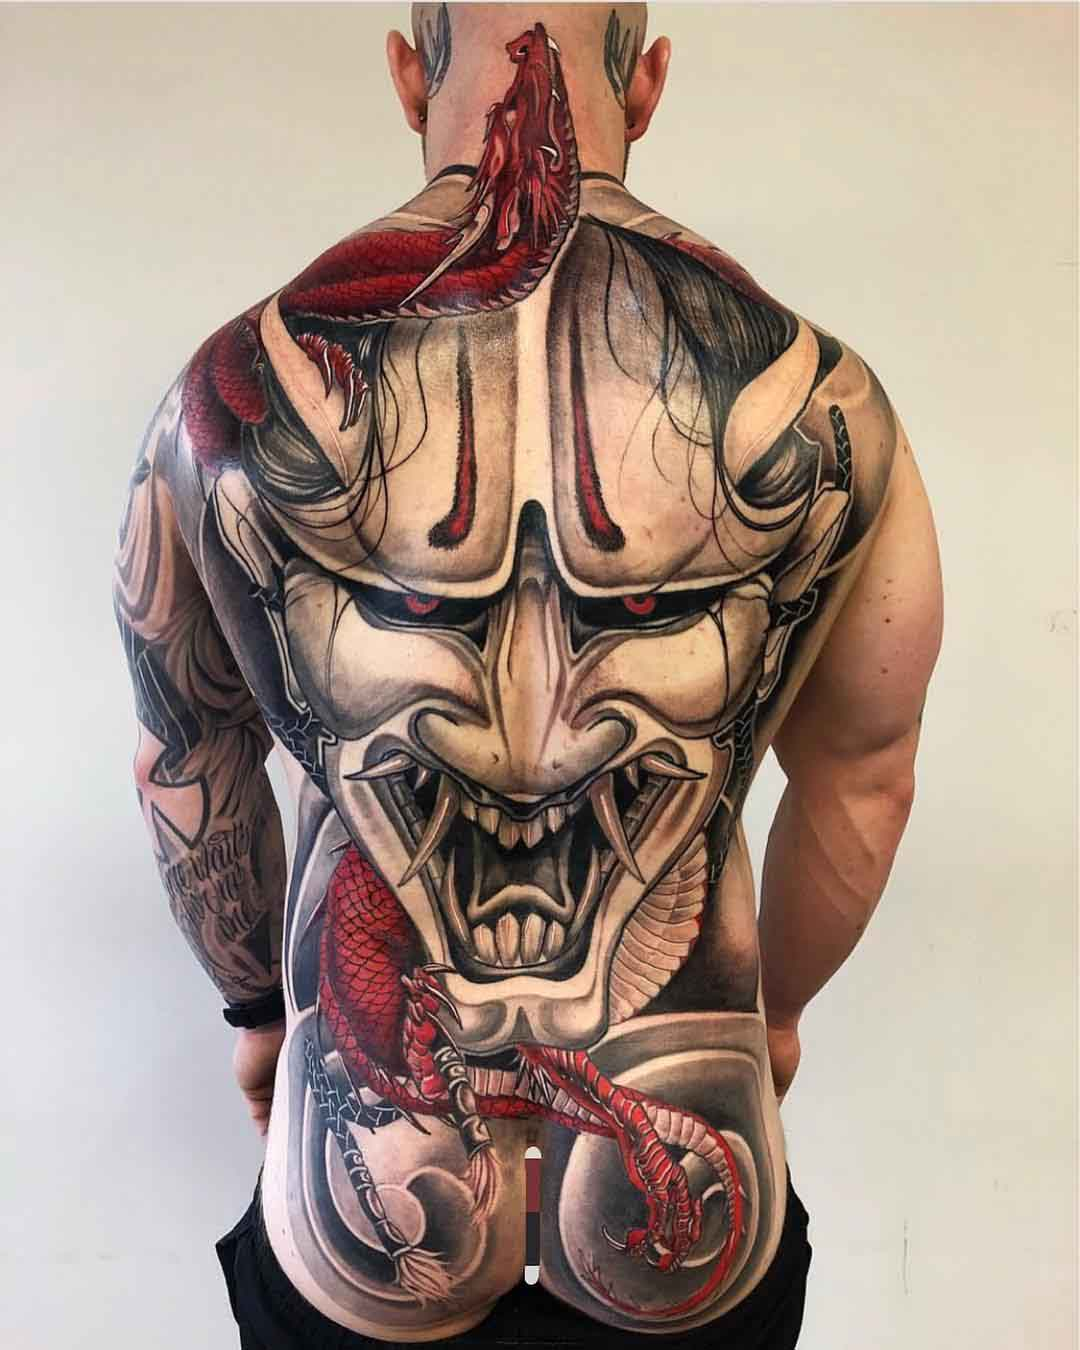 hannya mask tattoo on full back